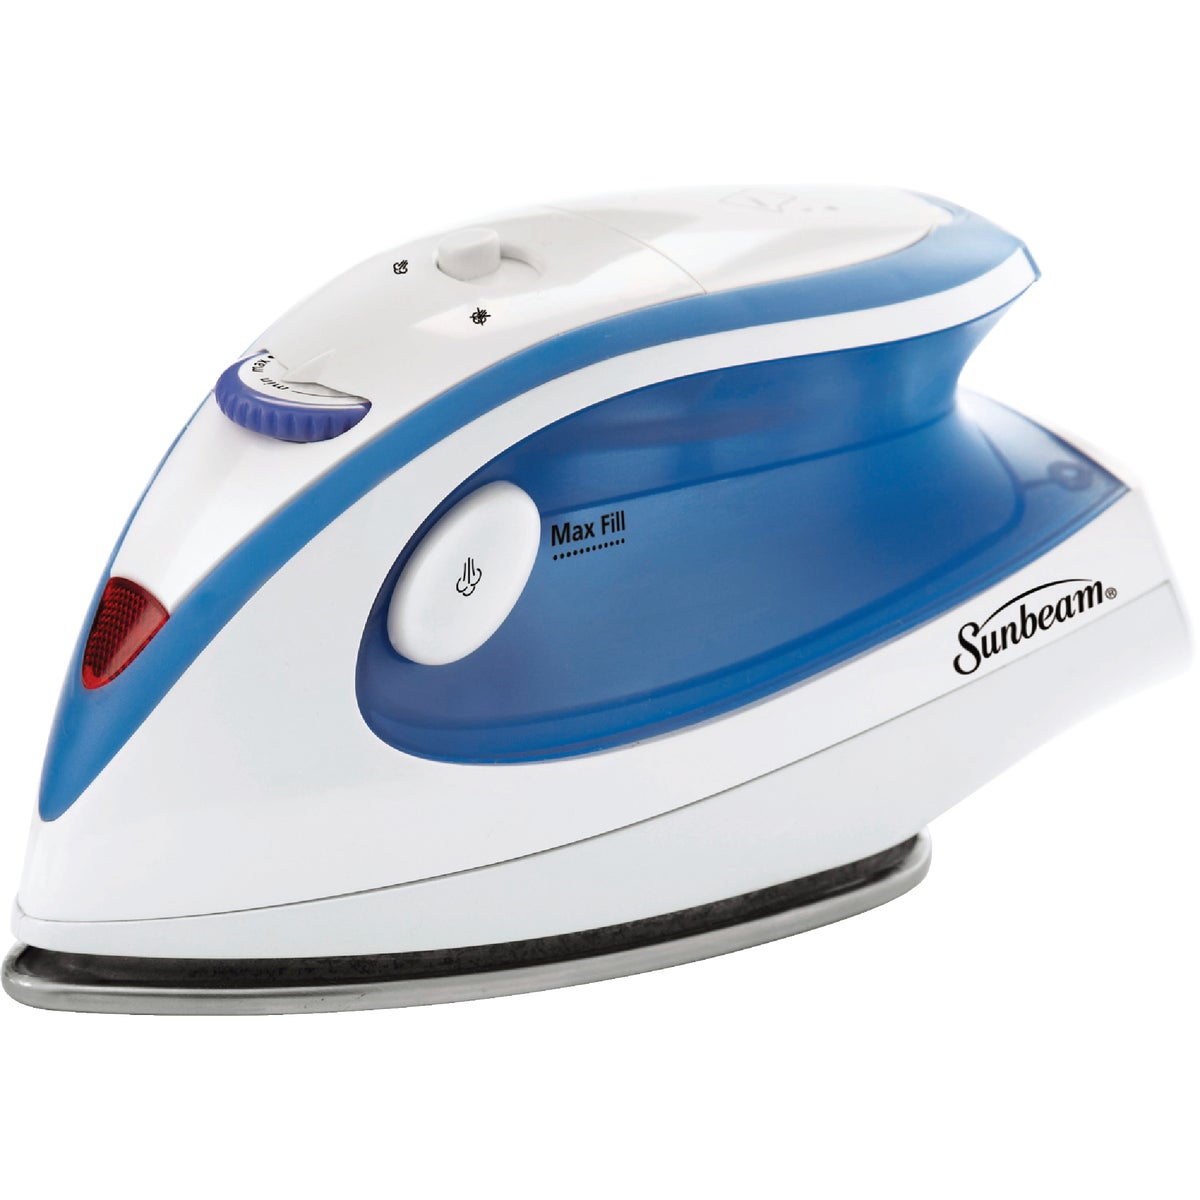 HOT-2-TROT COMPACT IRON - GCSBTR-100-000 by Jarden Cs